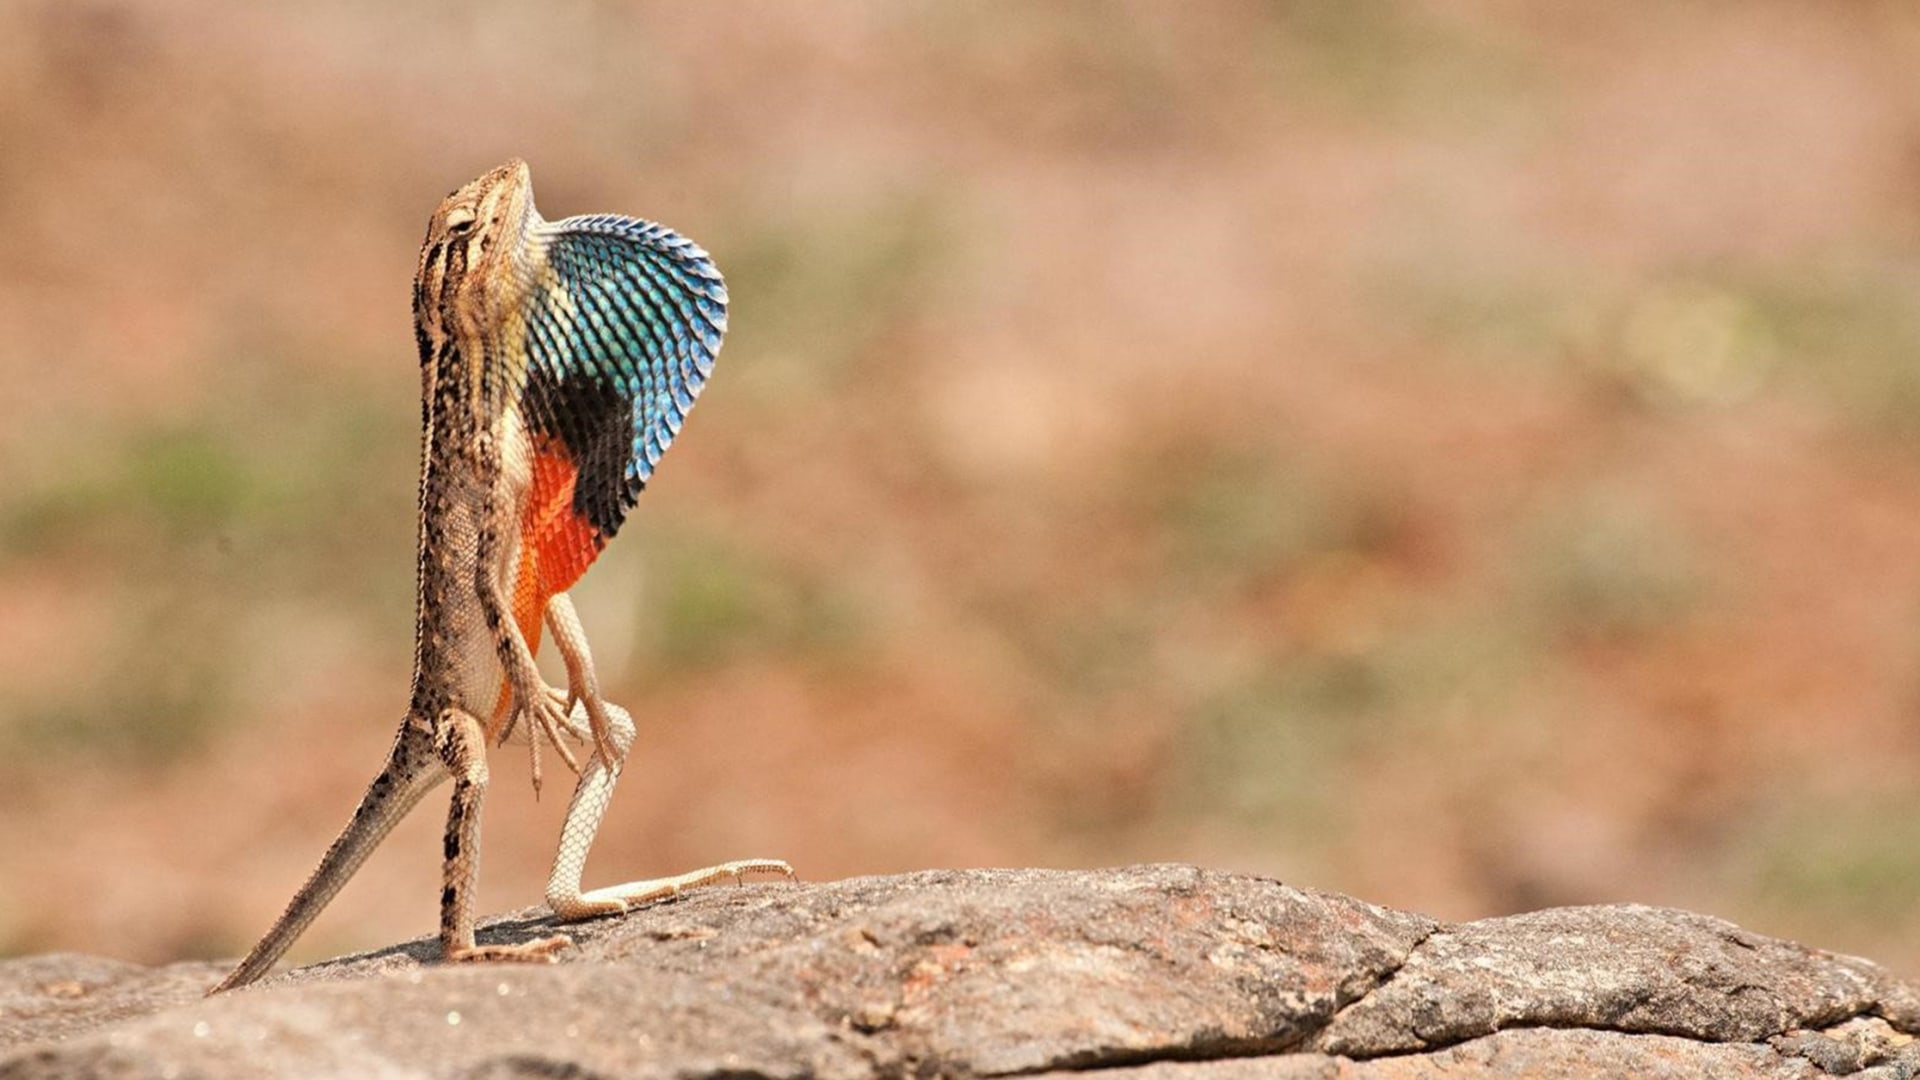 Fan-Throated Lizards: A Flash of Fabulous